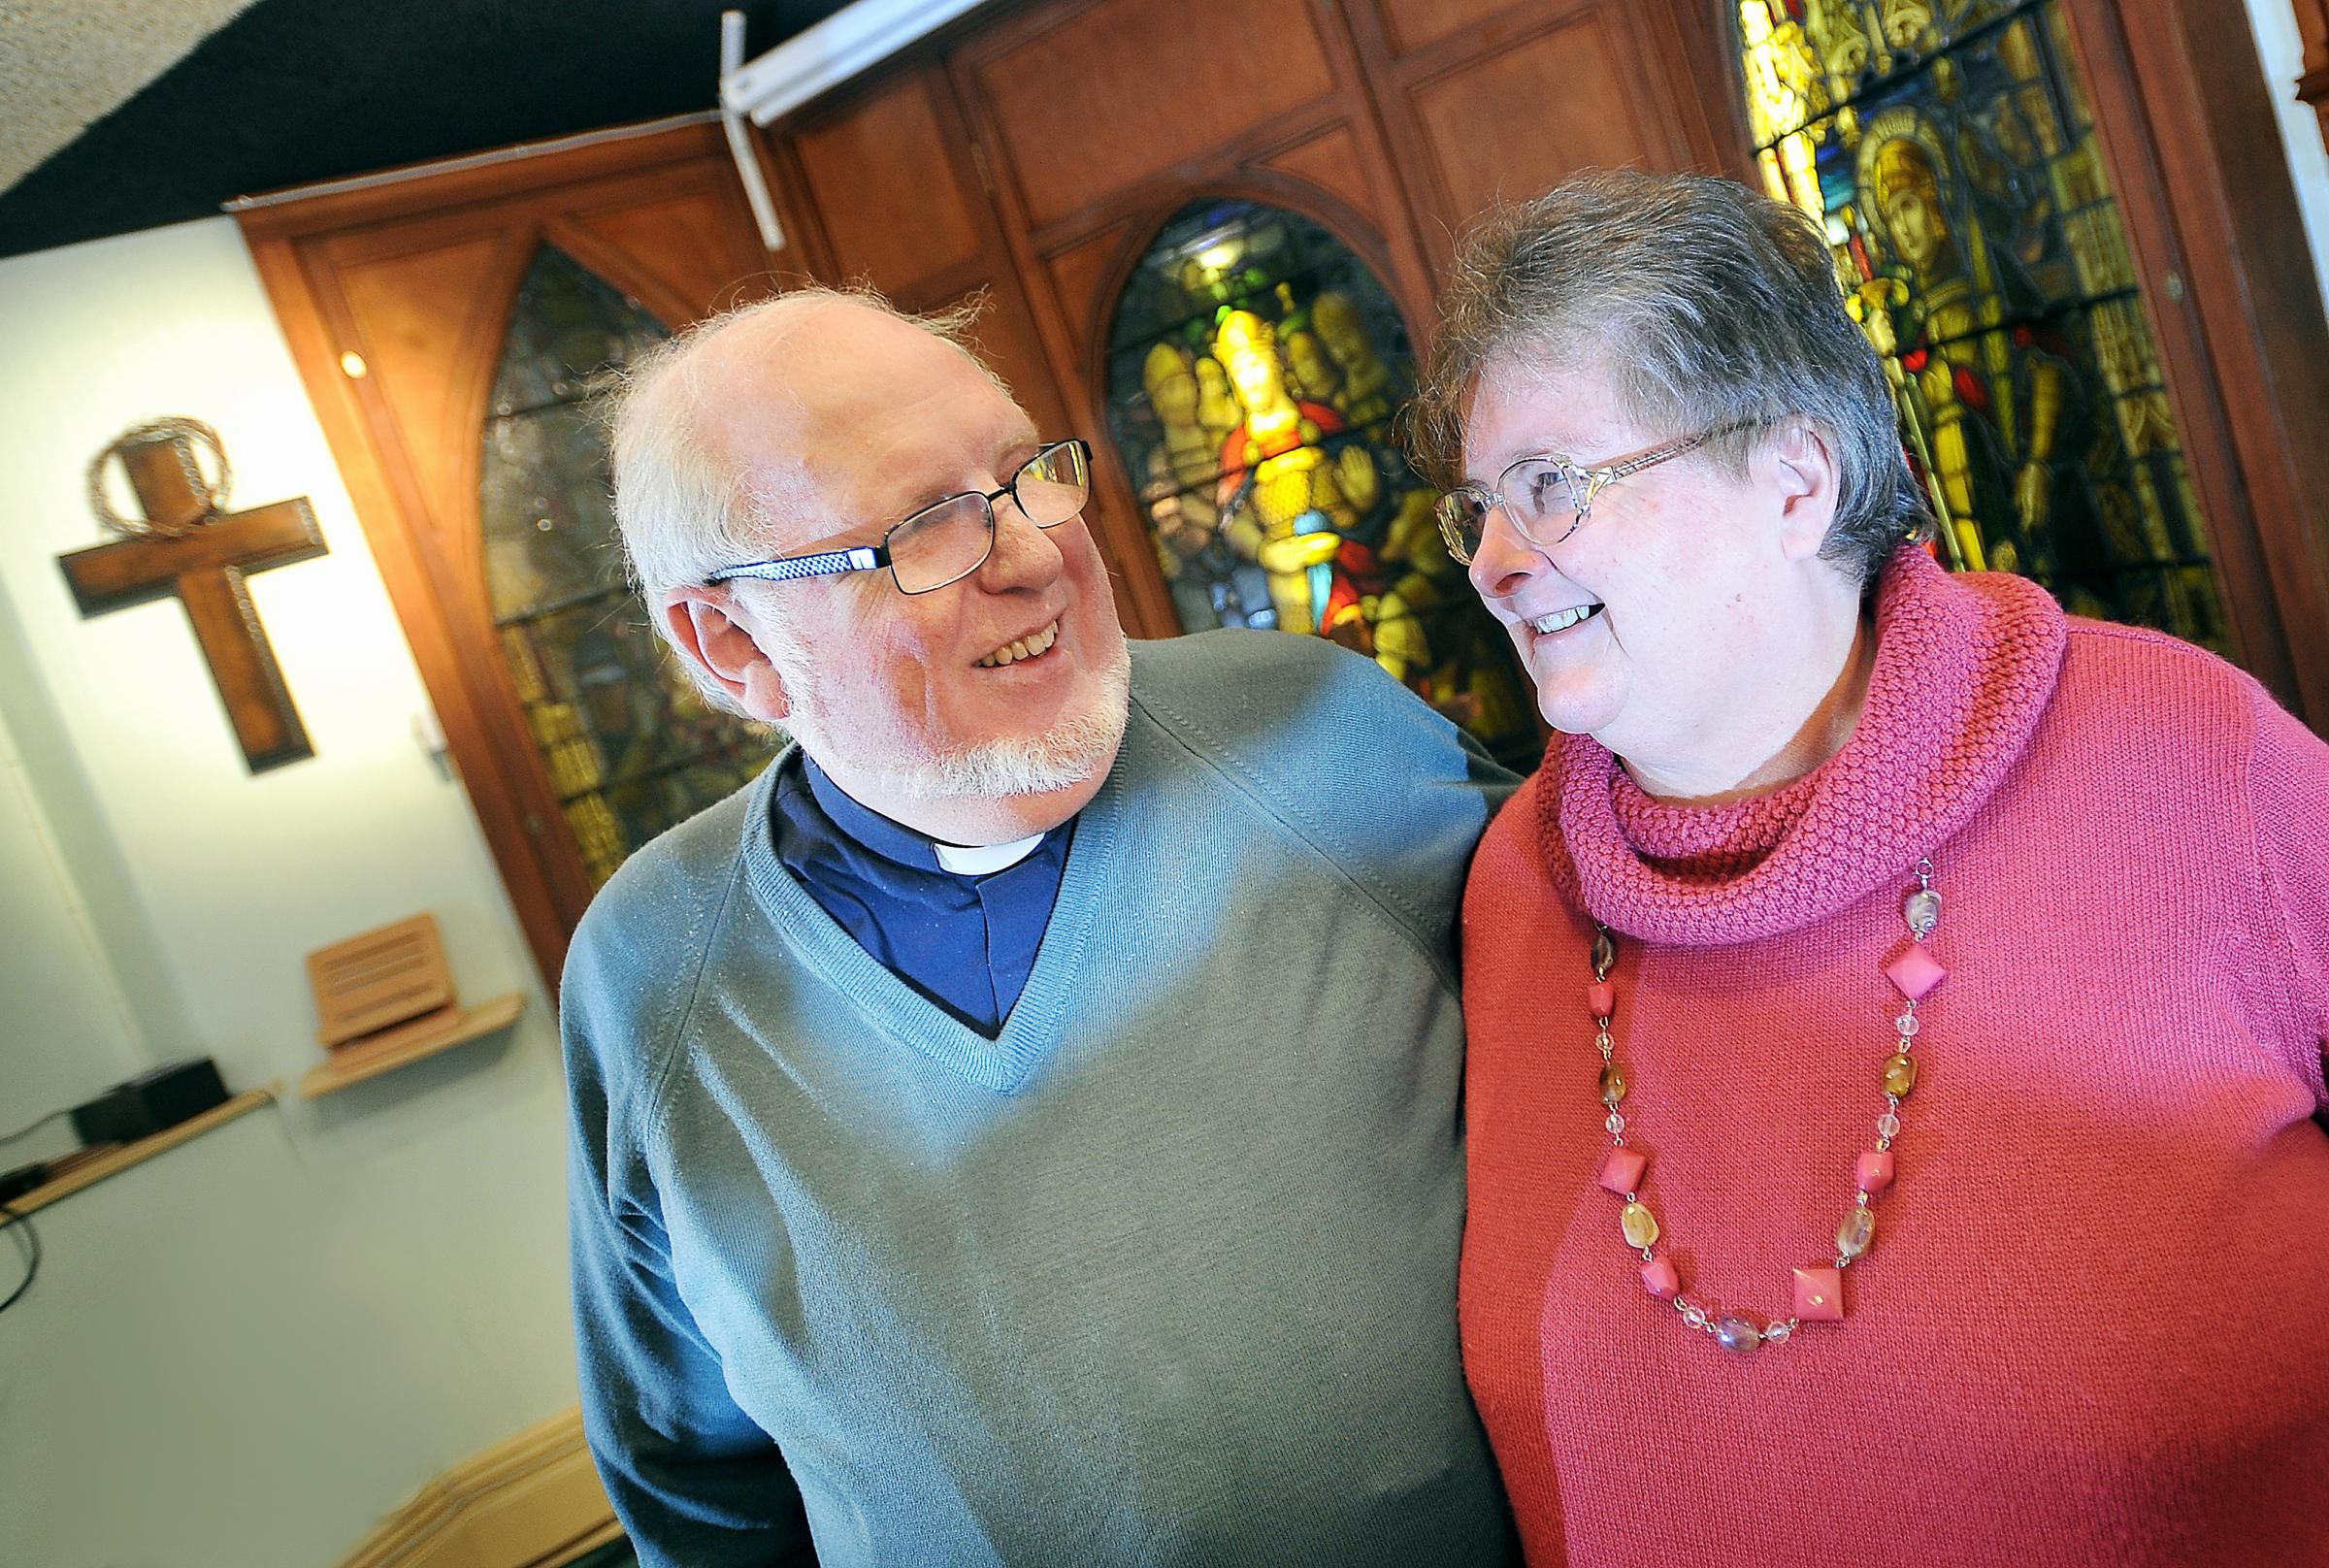 The Reverend Tony Newnham and wife Sue are retiring from their duties at Heaton Baptist Church and will not be replaced.